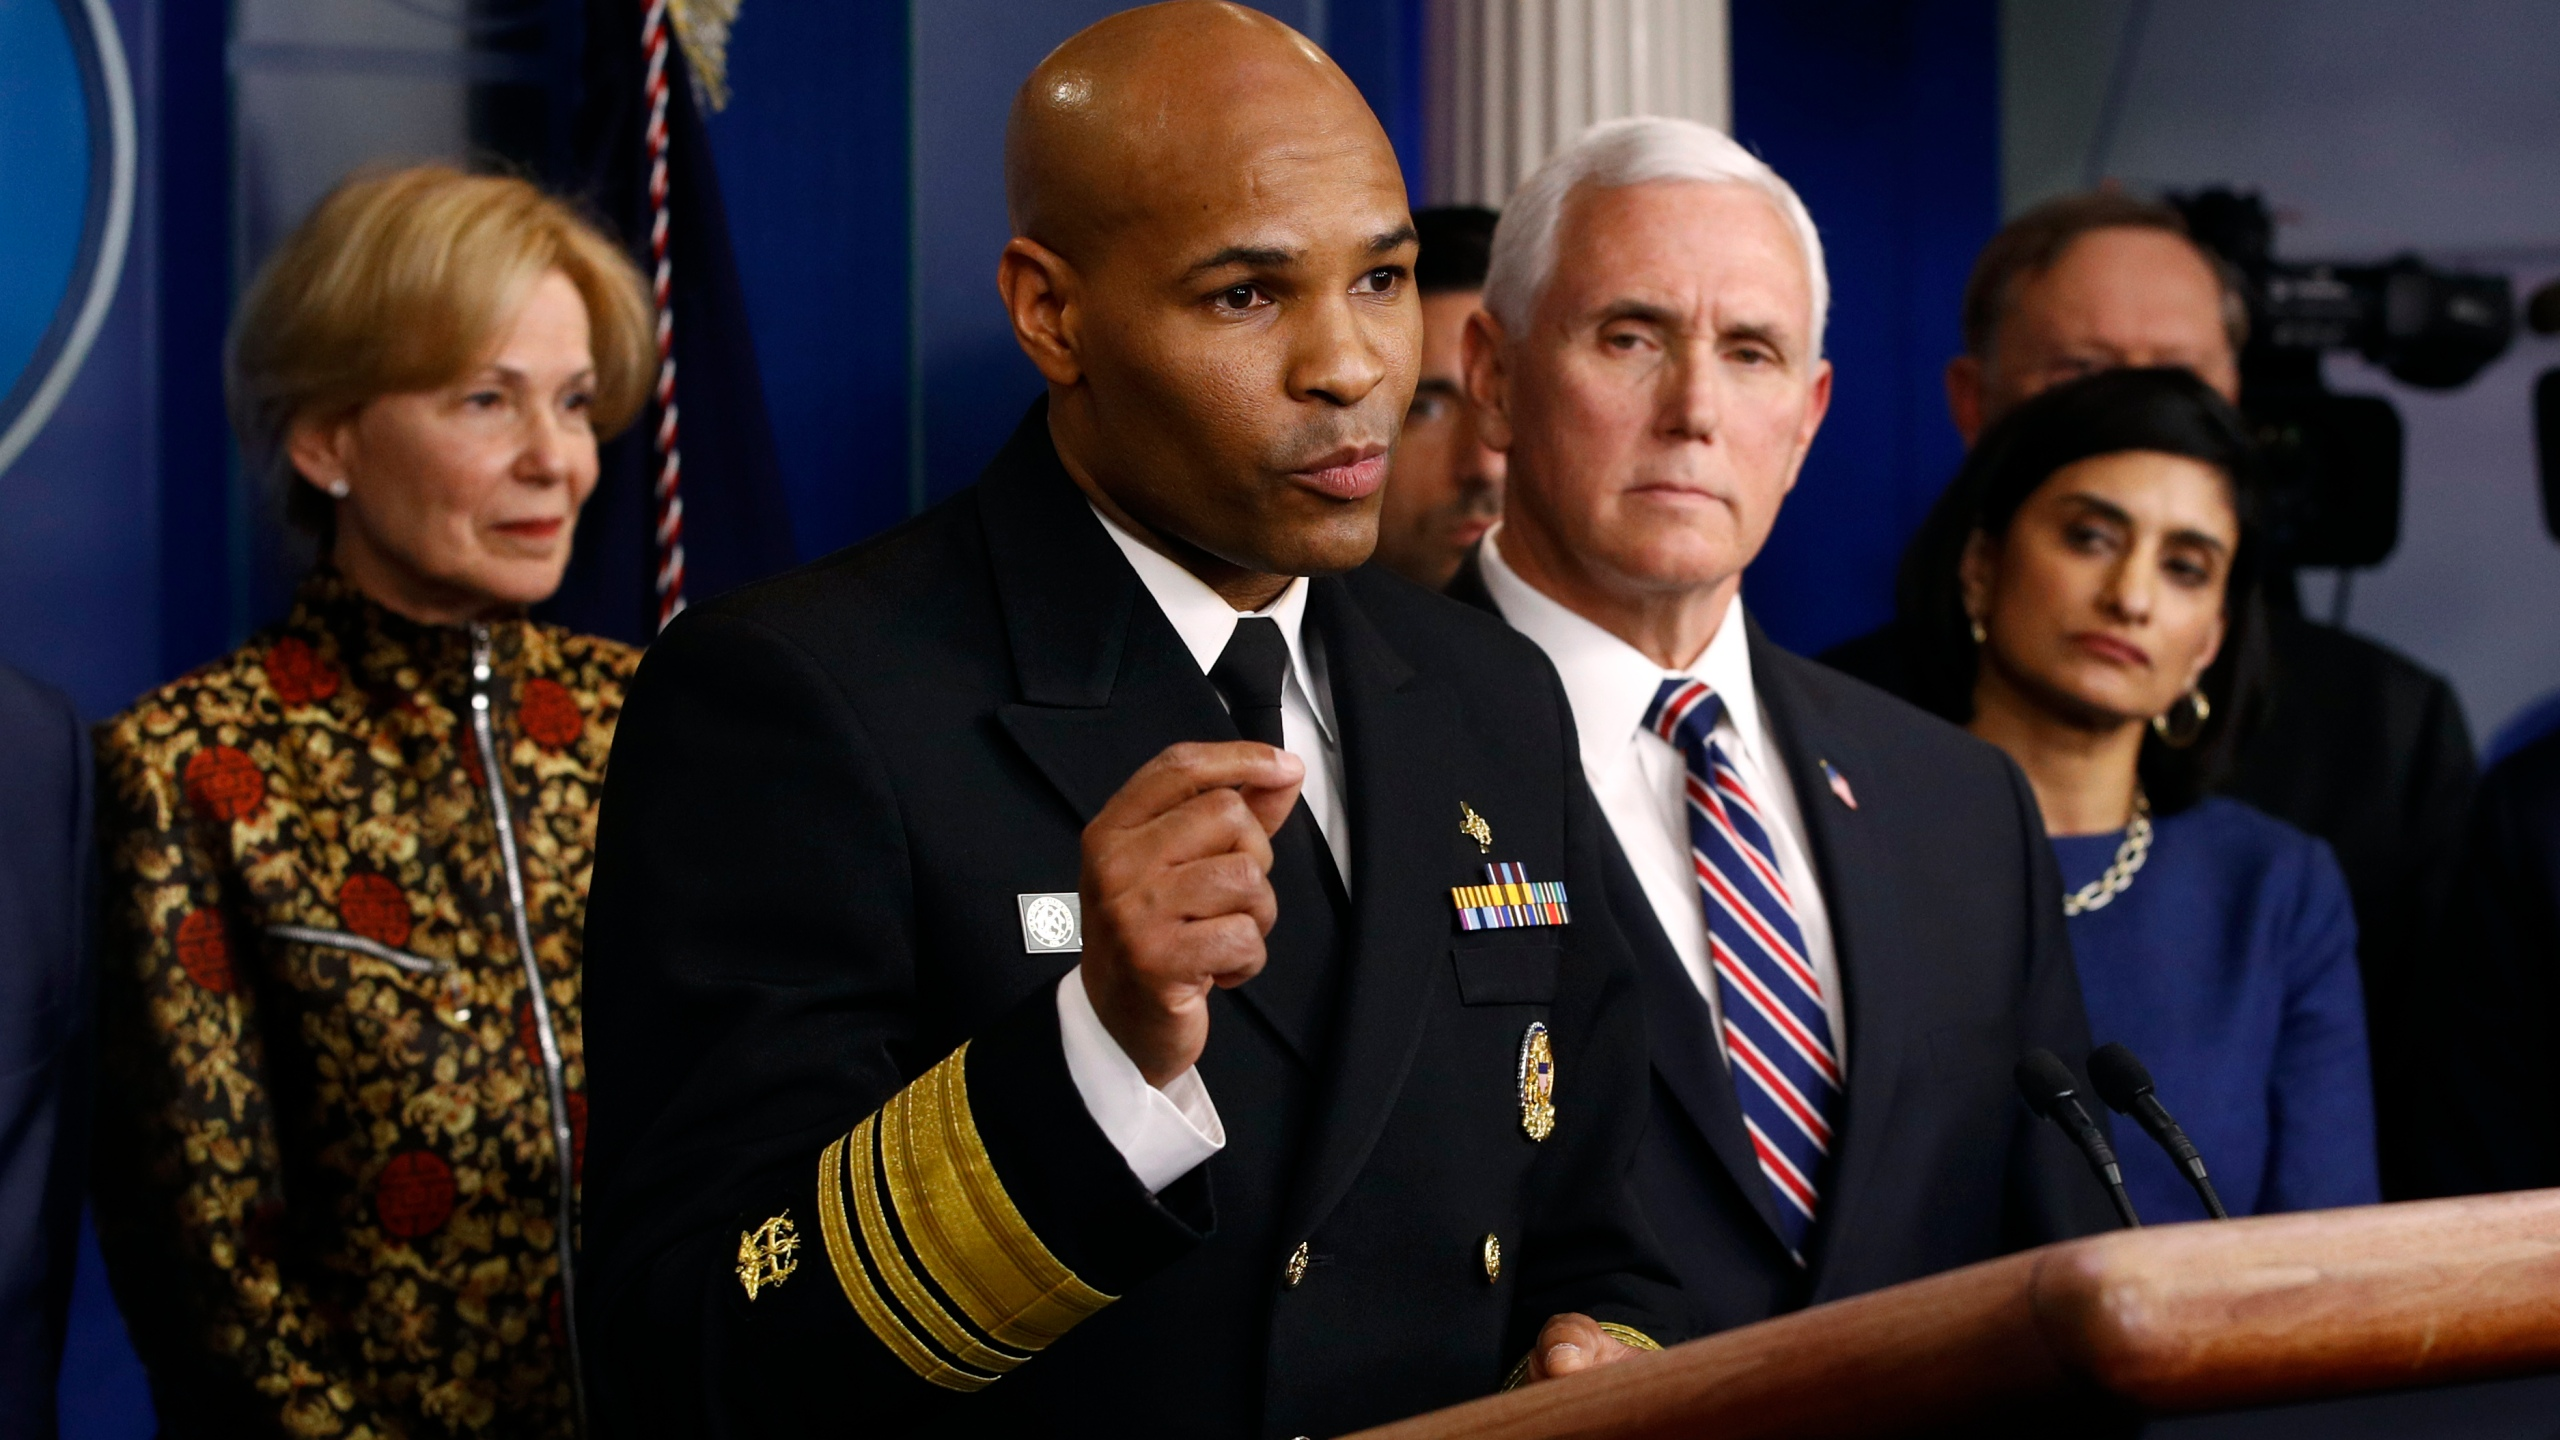 Jerome Adams, Deborah Birx, Seema Verma, Mike Pence